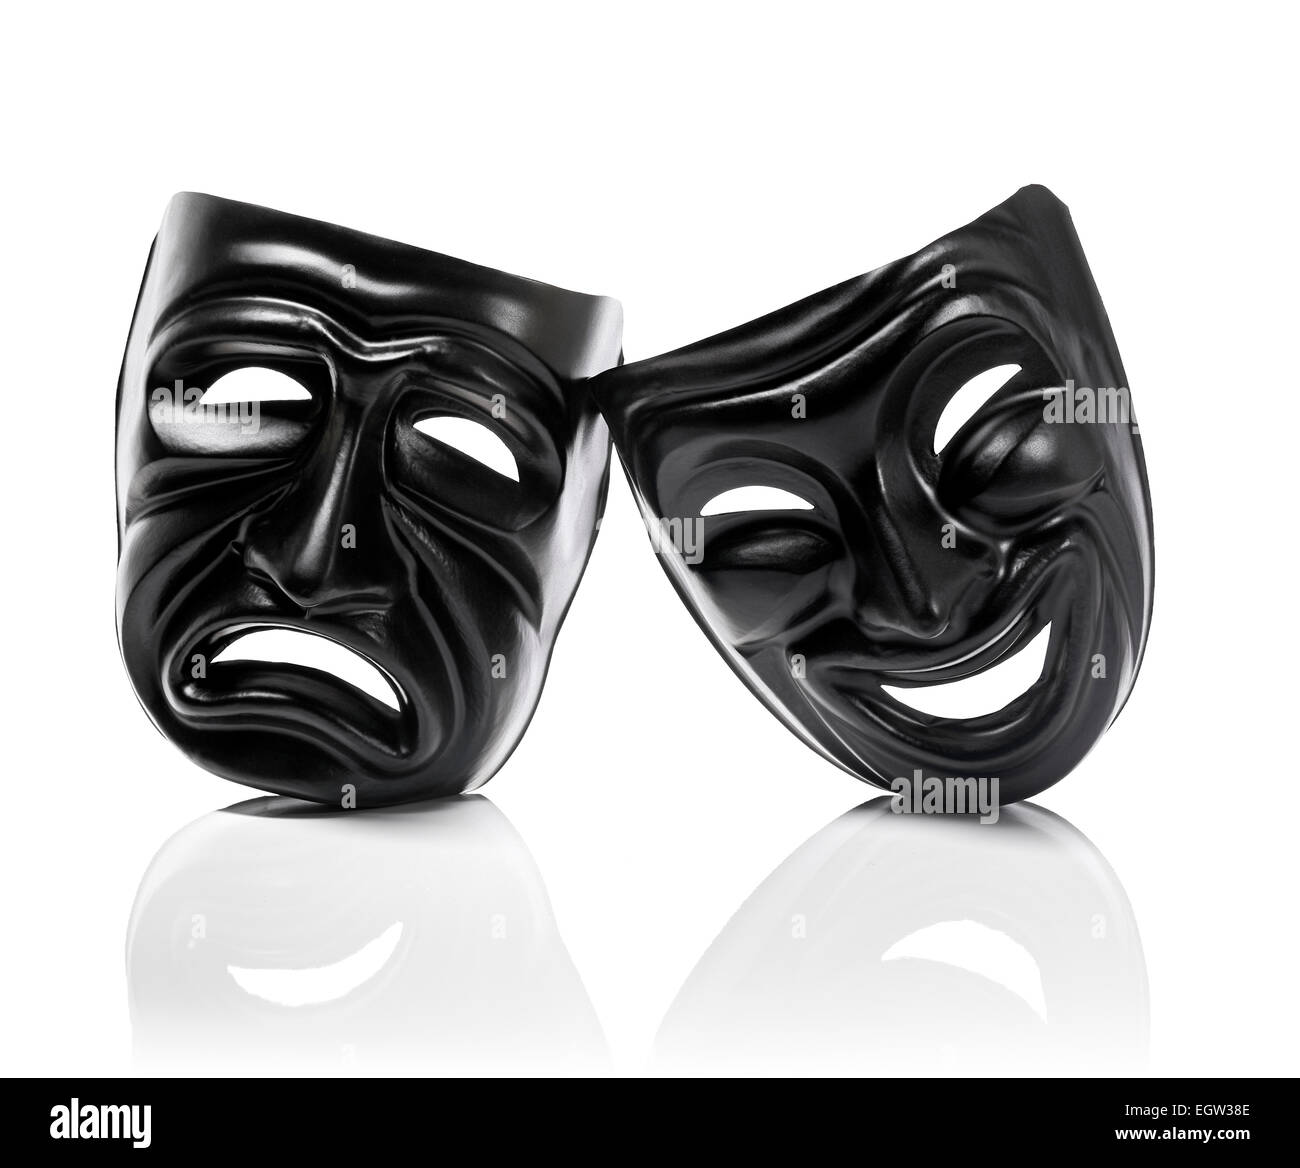 Generic plastic masks as theatrical symbols isolated on white with reflection - Stock Image